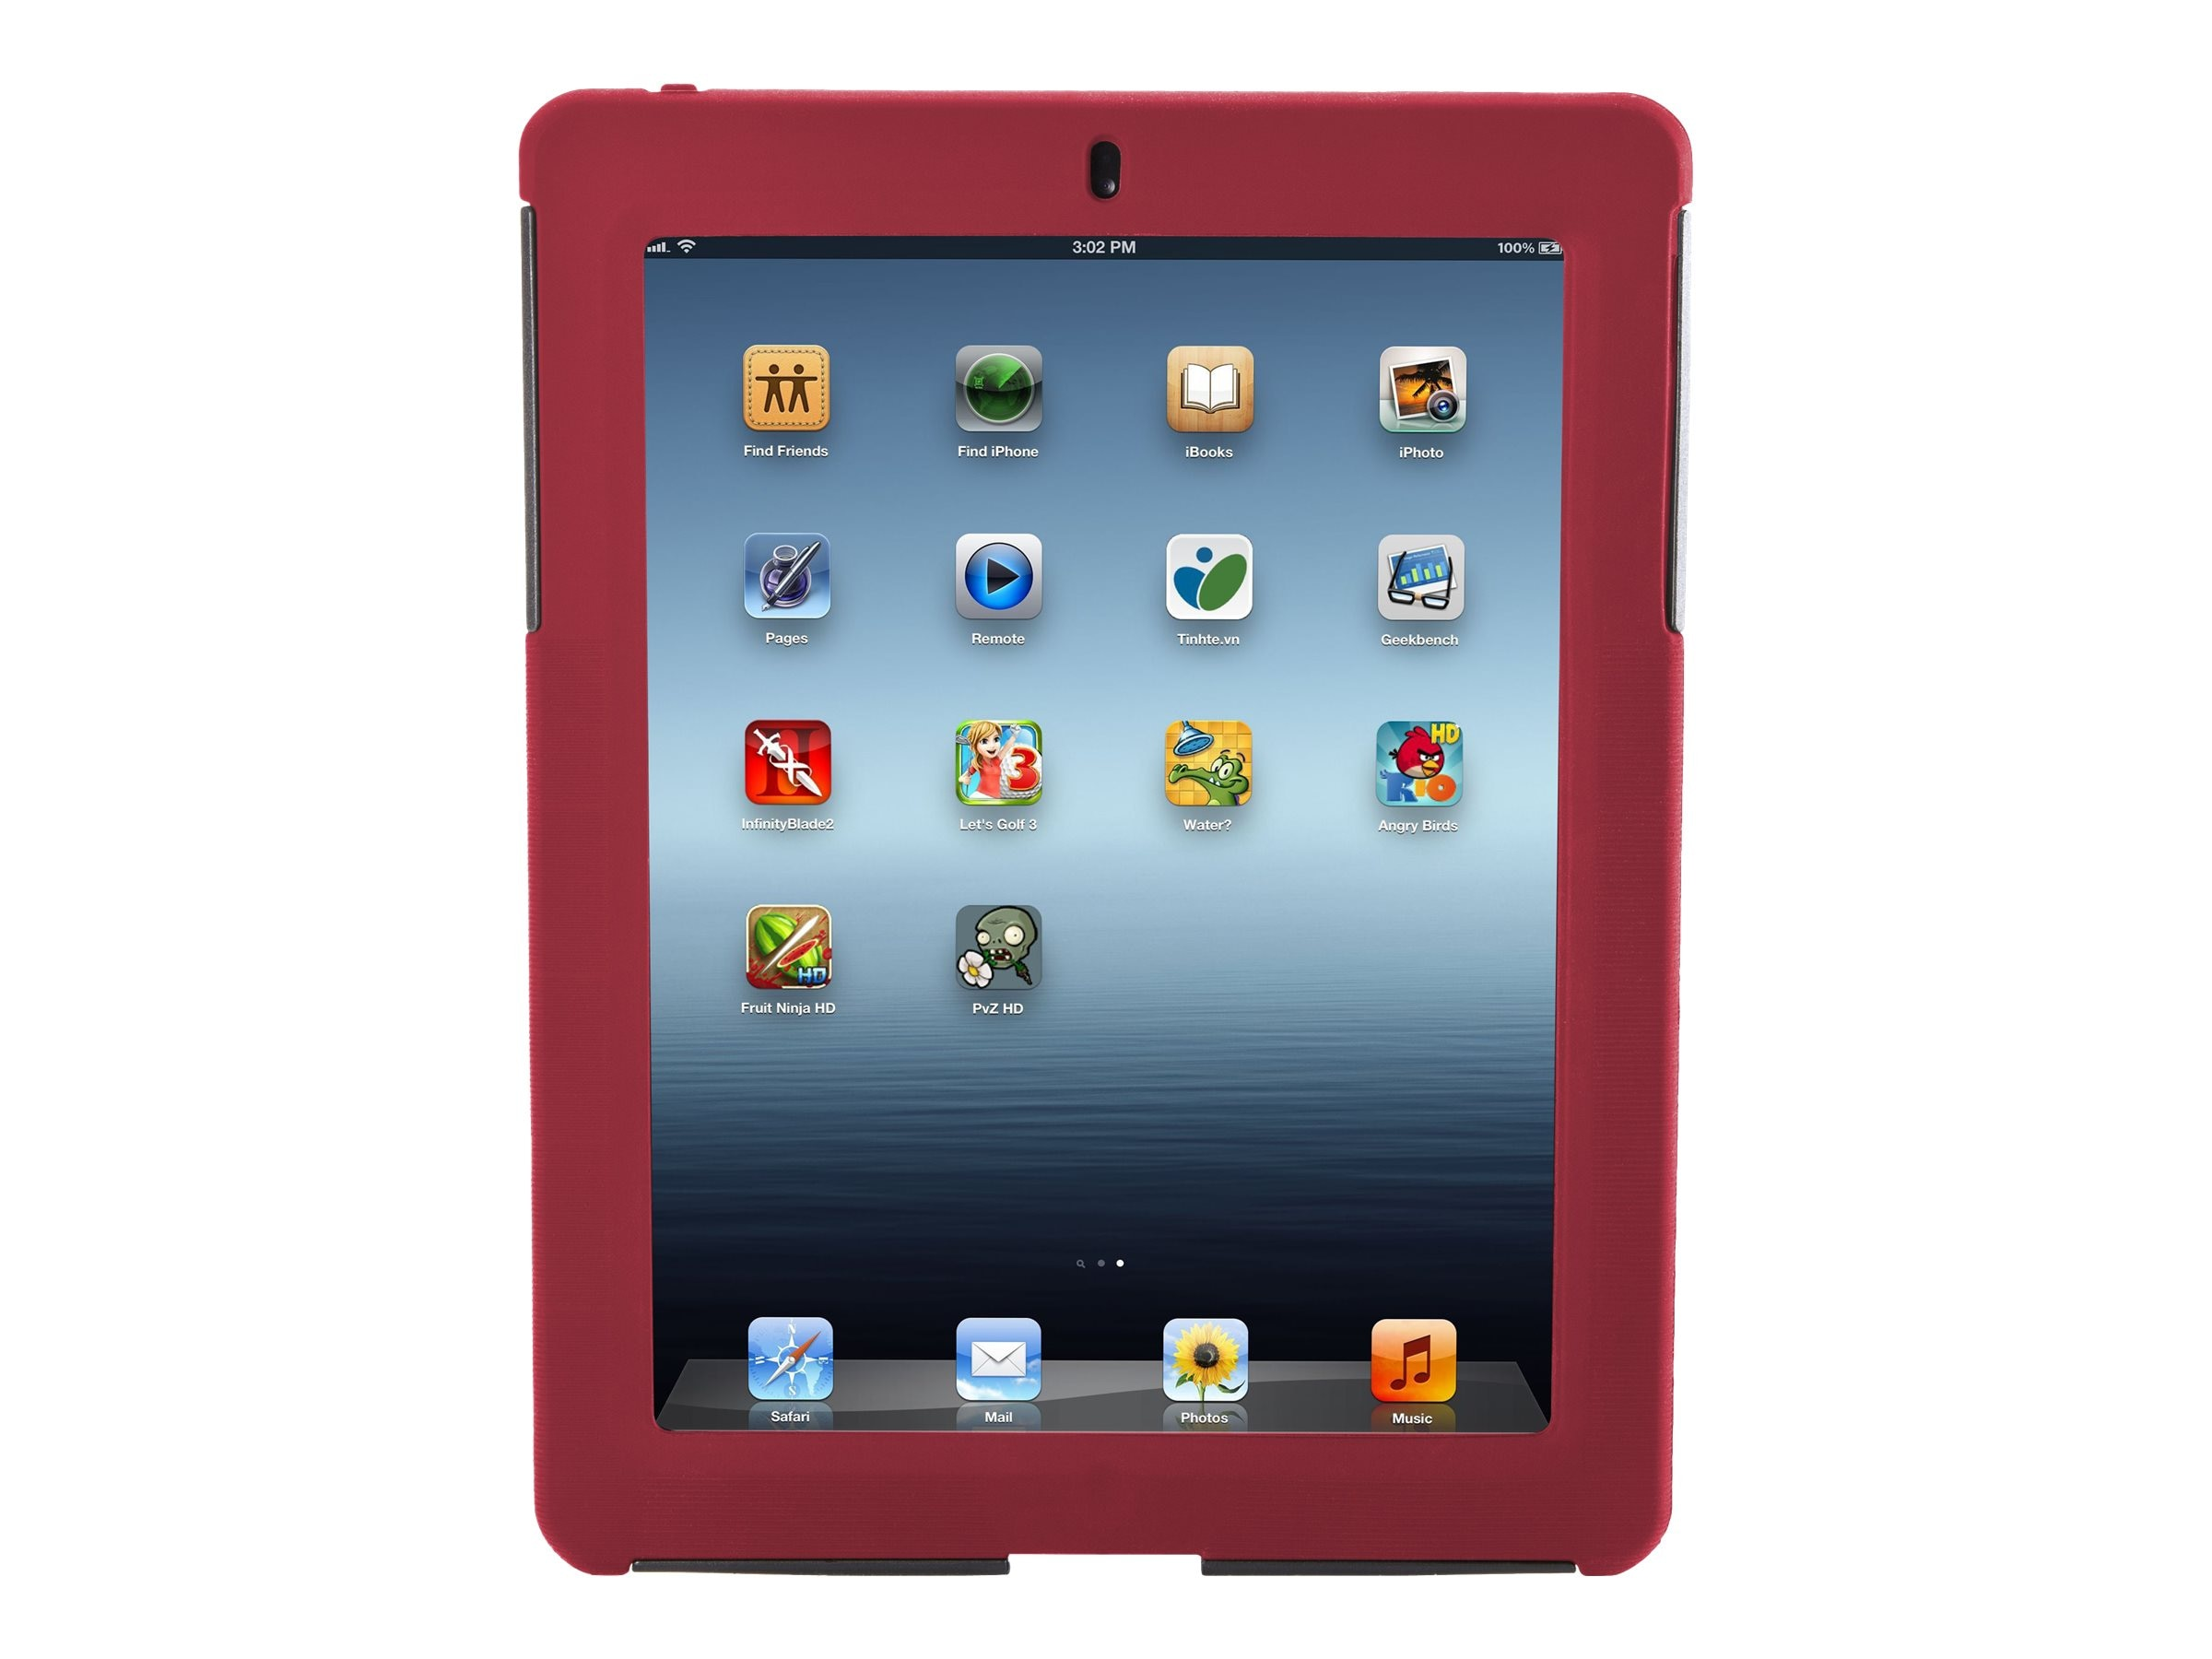 Targus Rugged Safeport Case for iPad 3 4, Red